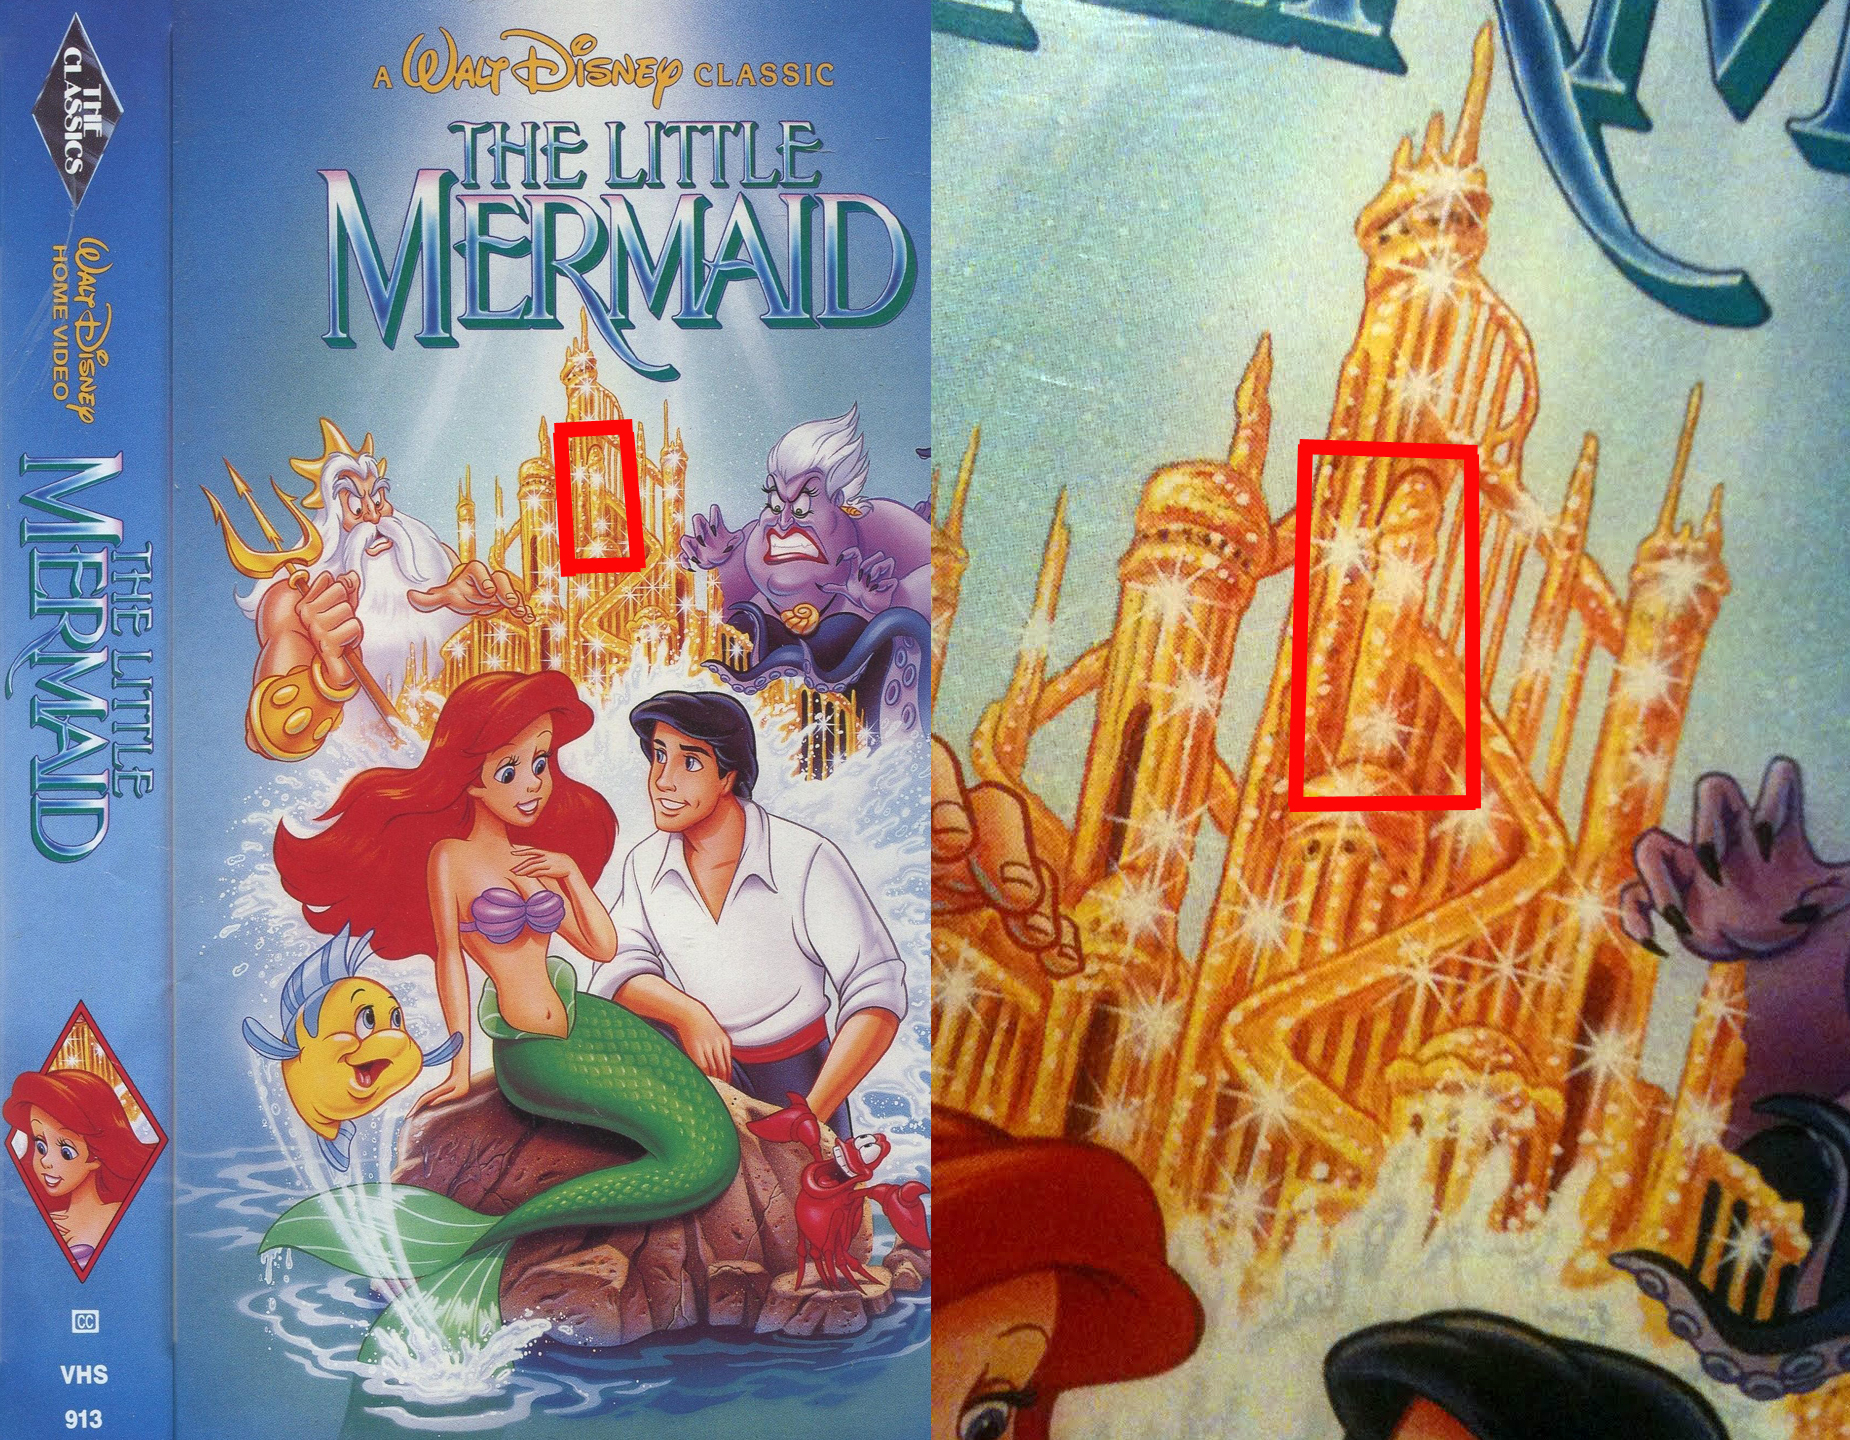 1 - A hidden penis on the cover of The Little Mermaid VHS box